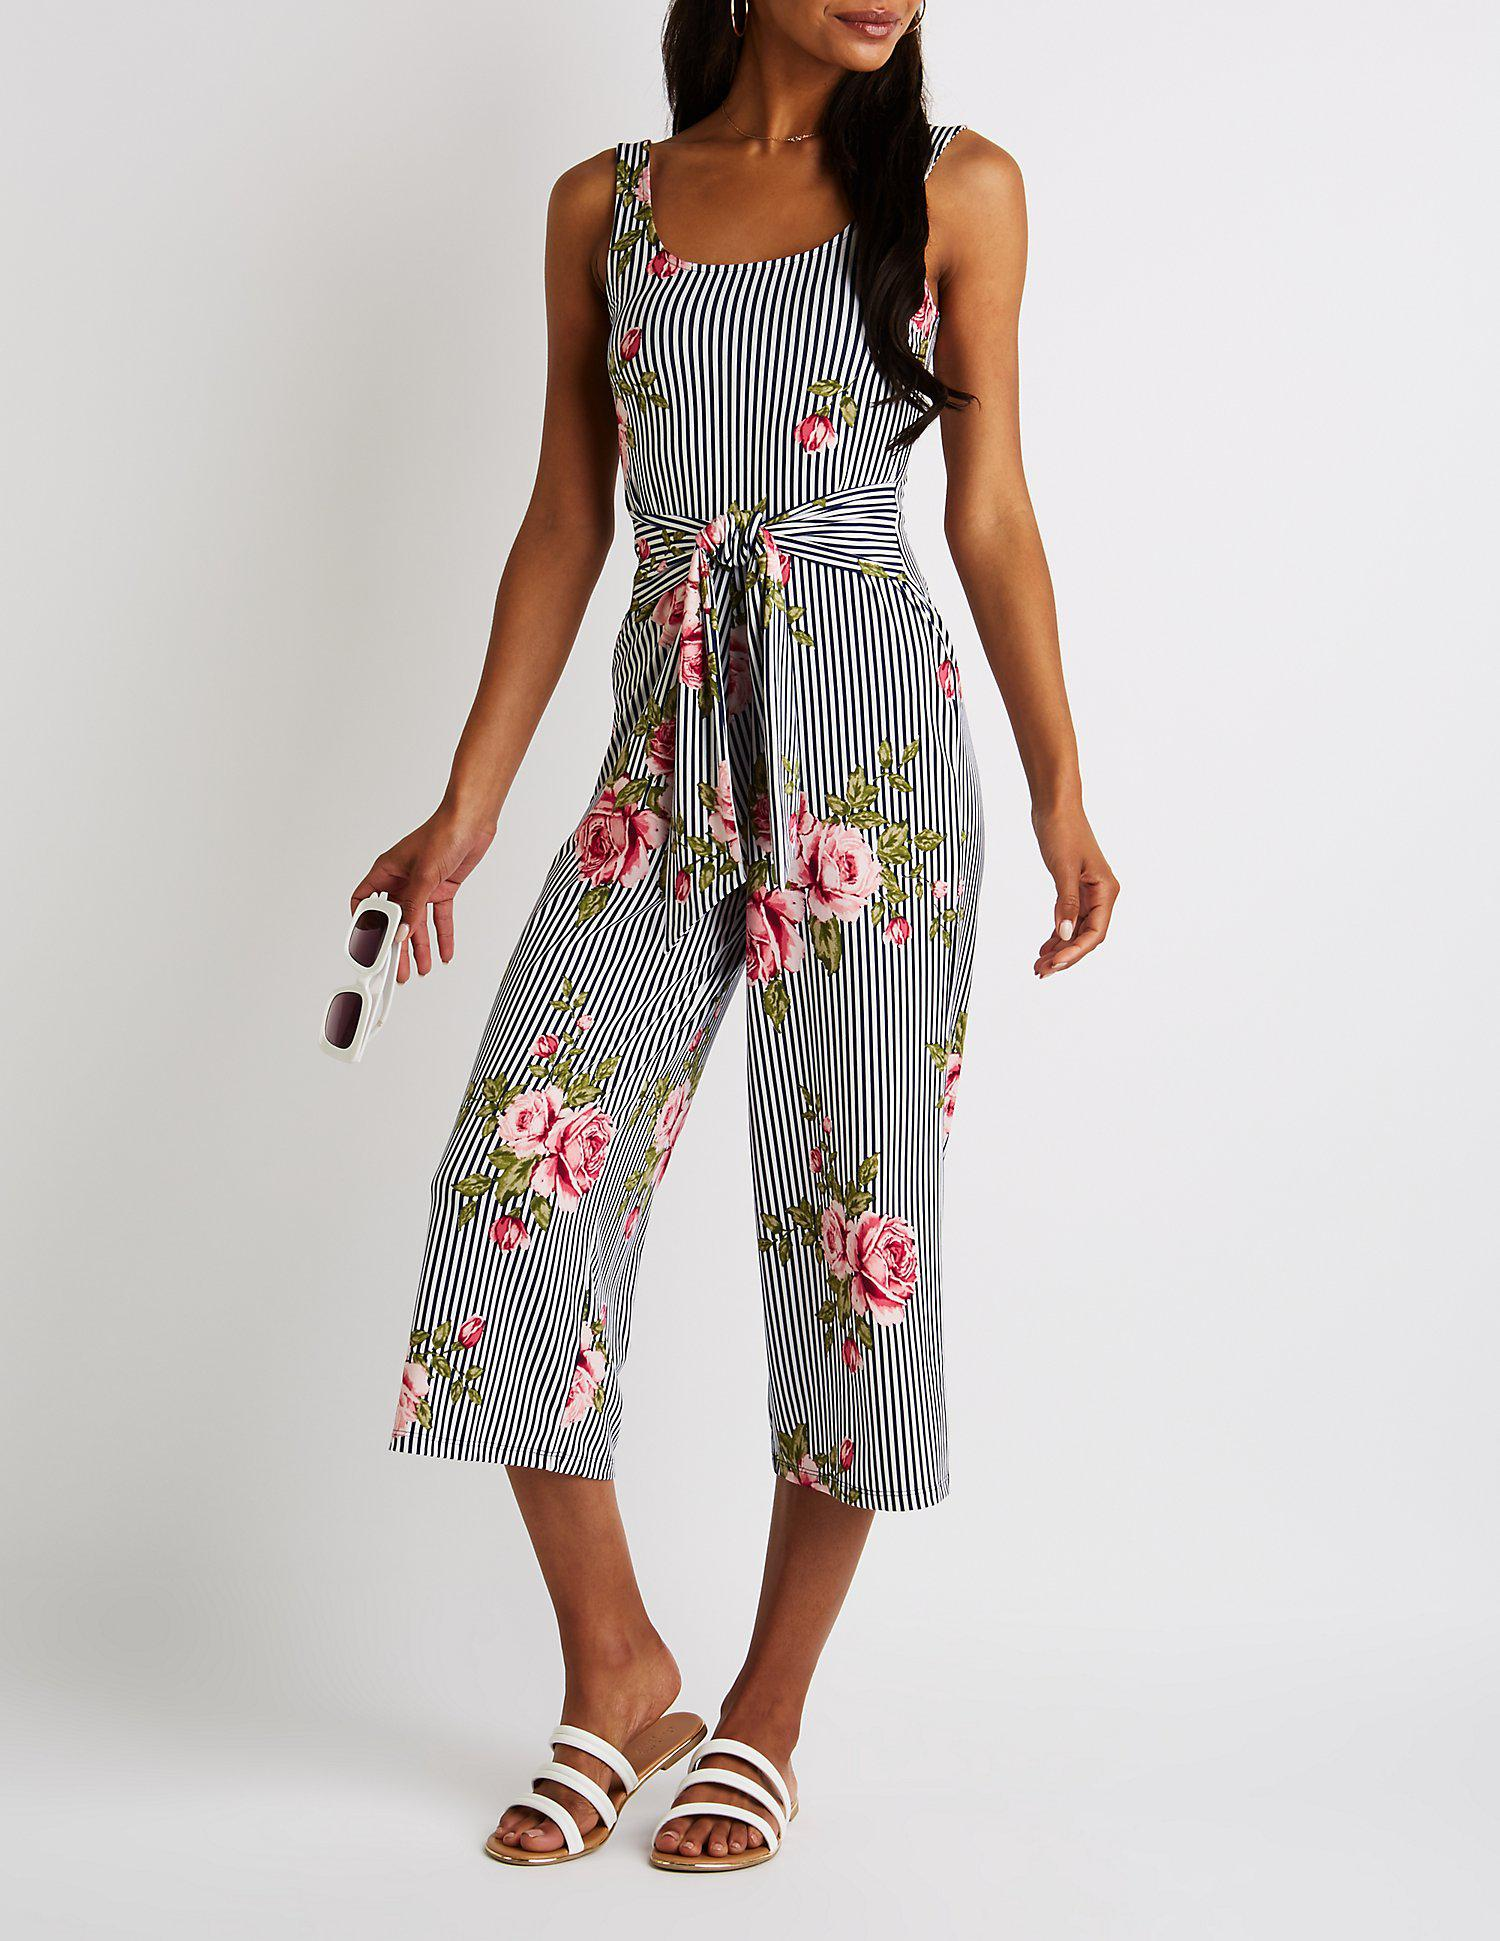 78a524fbb93 Lyst - Charlotte Russe Striped Floral Scoop Neck Cropped Jumpsuit in ...